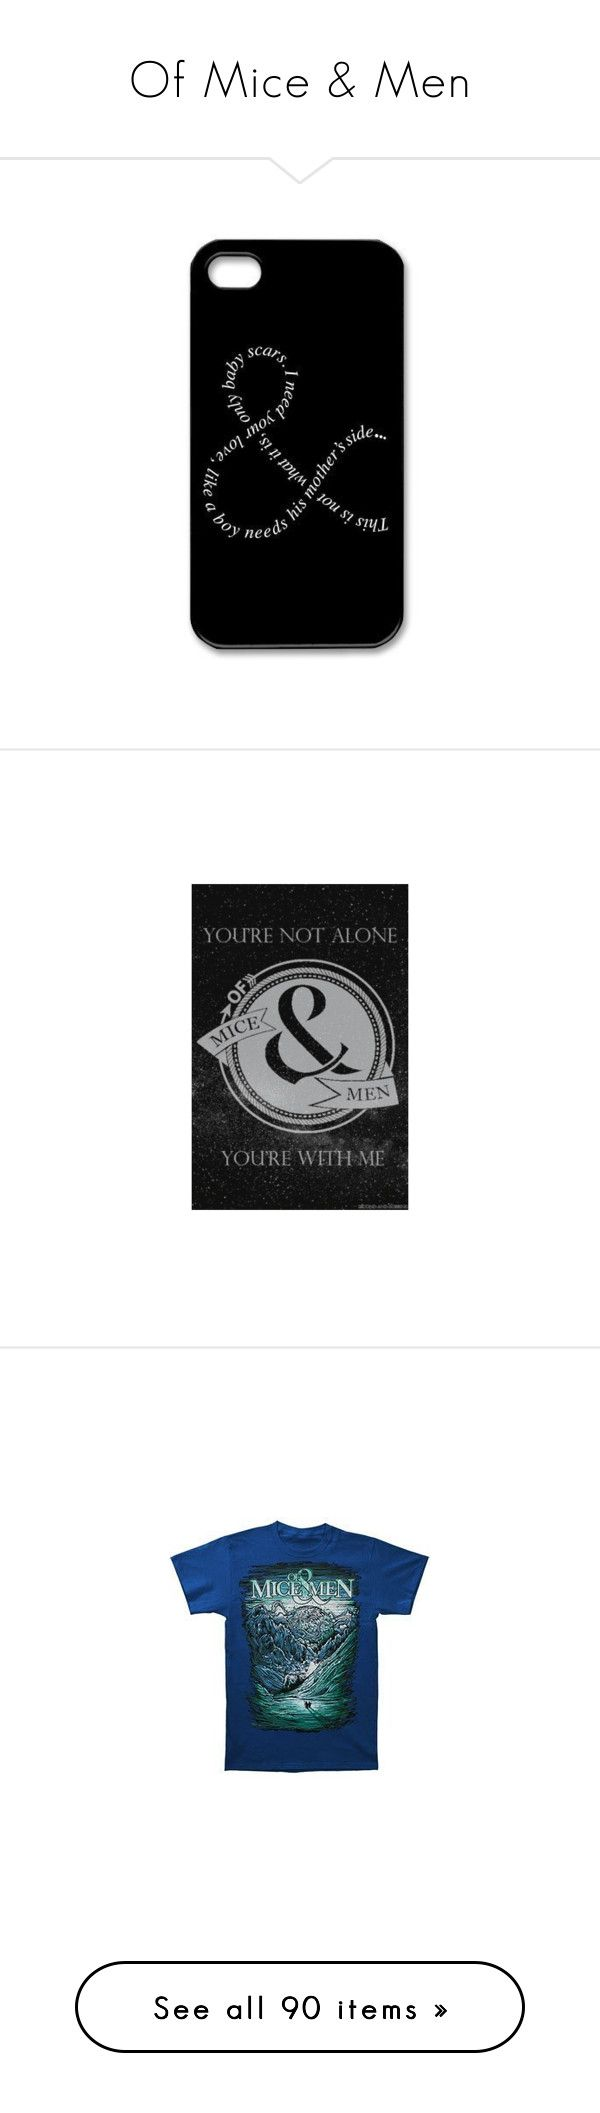 """""""Of Mice & Men"""" by two-hundred-forty-nine-point-two ❤ liked on Polyvore featuring ThisIsABandCollection, men's fashion, men's accessories, men's tech accessories, phone cases, accessories, phone, men's clothing, men's shirts and men's t-shirts"""